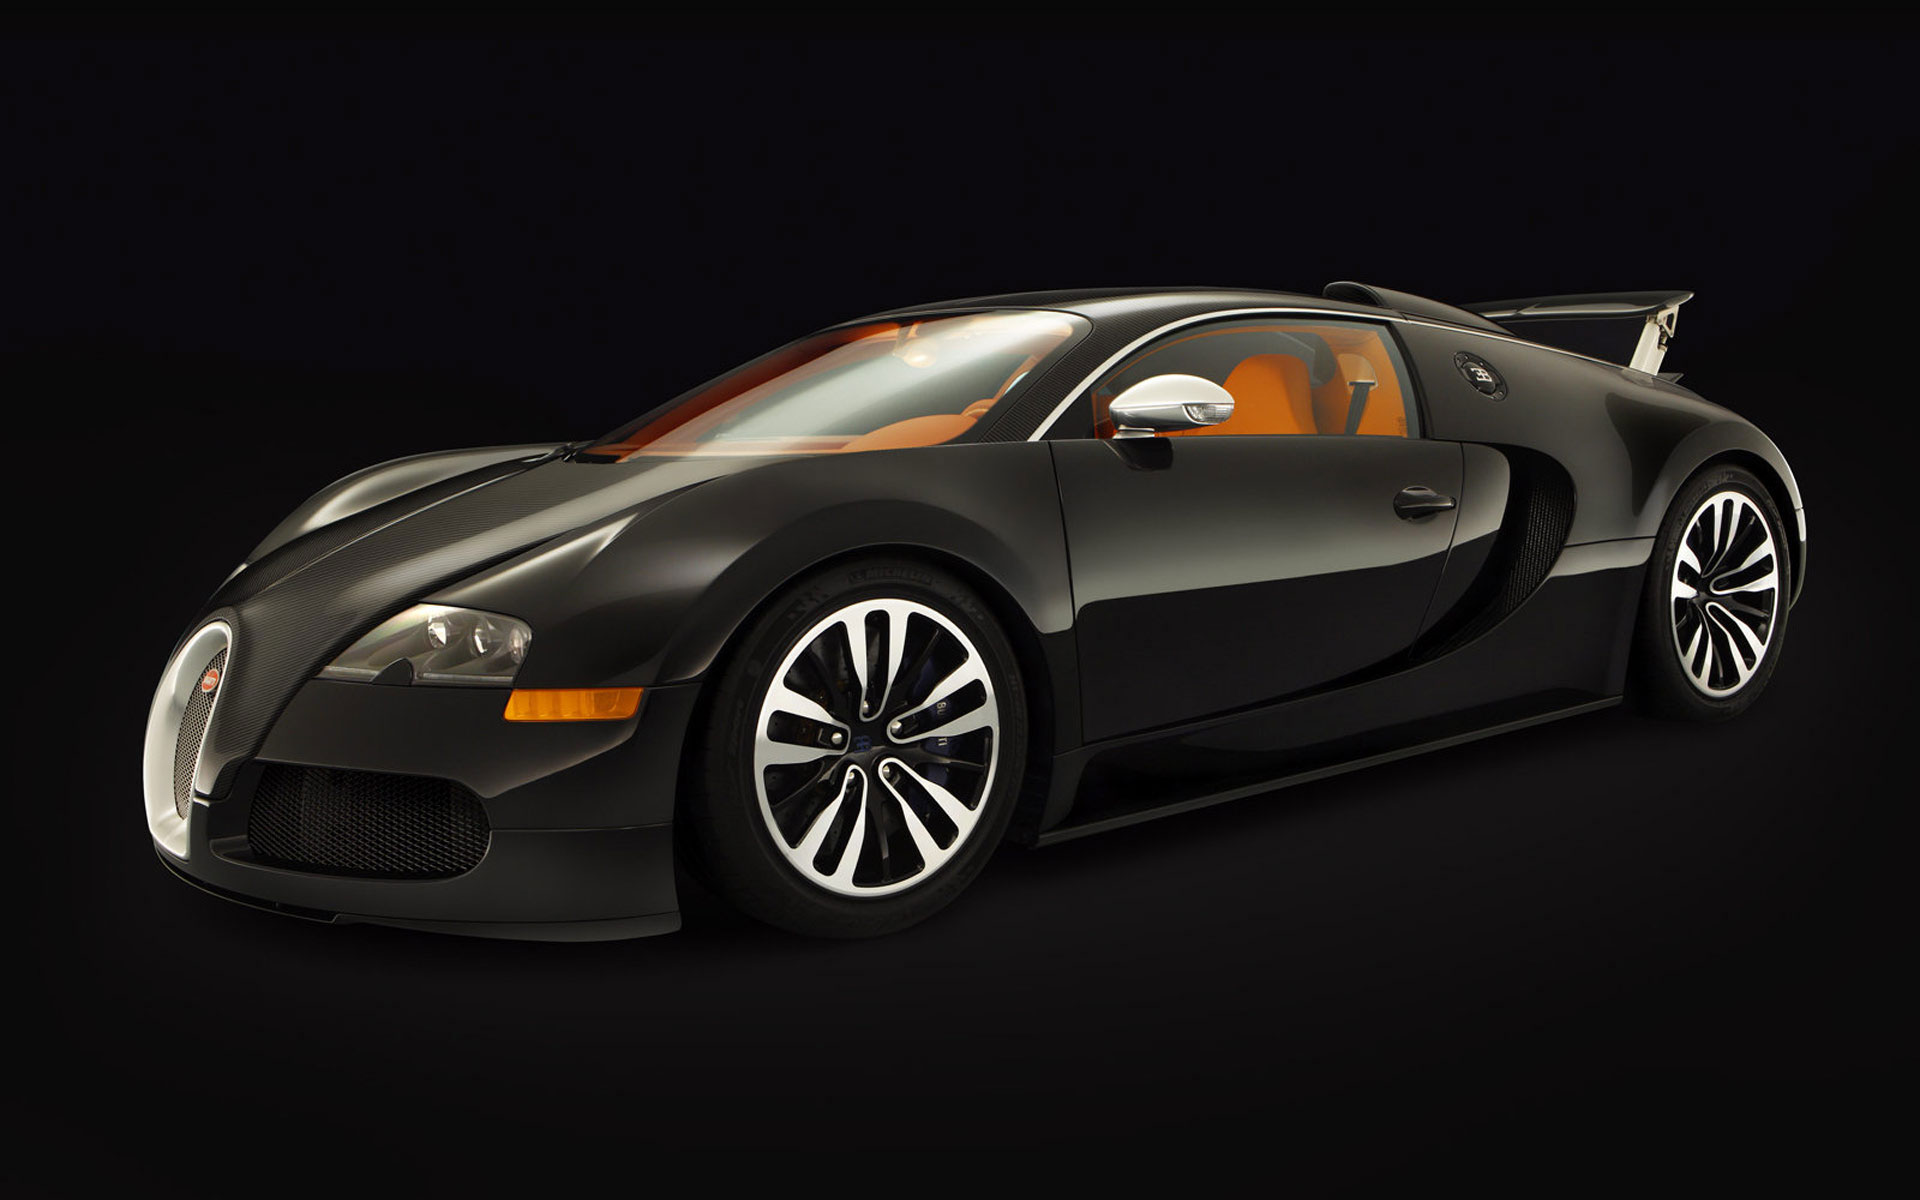 Bugatti Veyron Car Widescreen Desktop Wallpapers For Ios